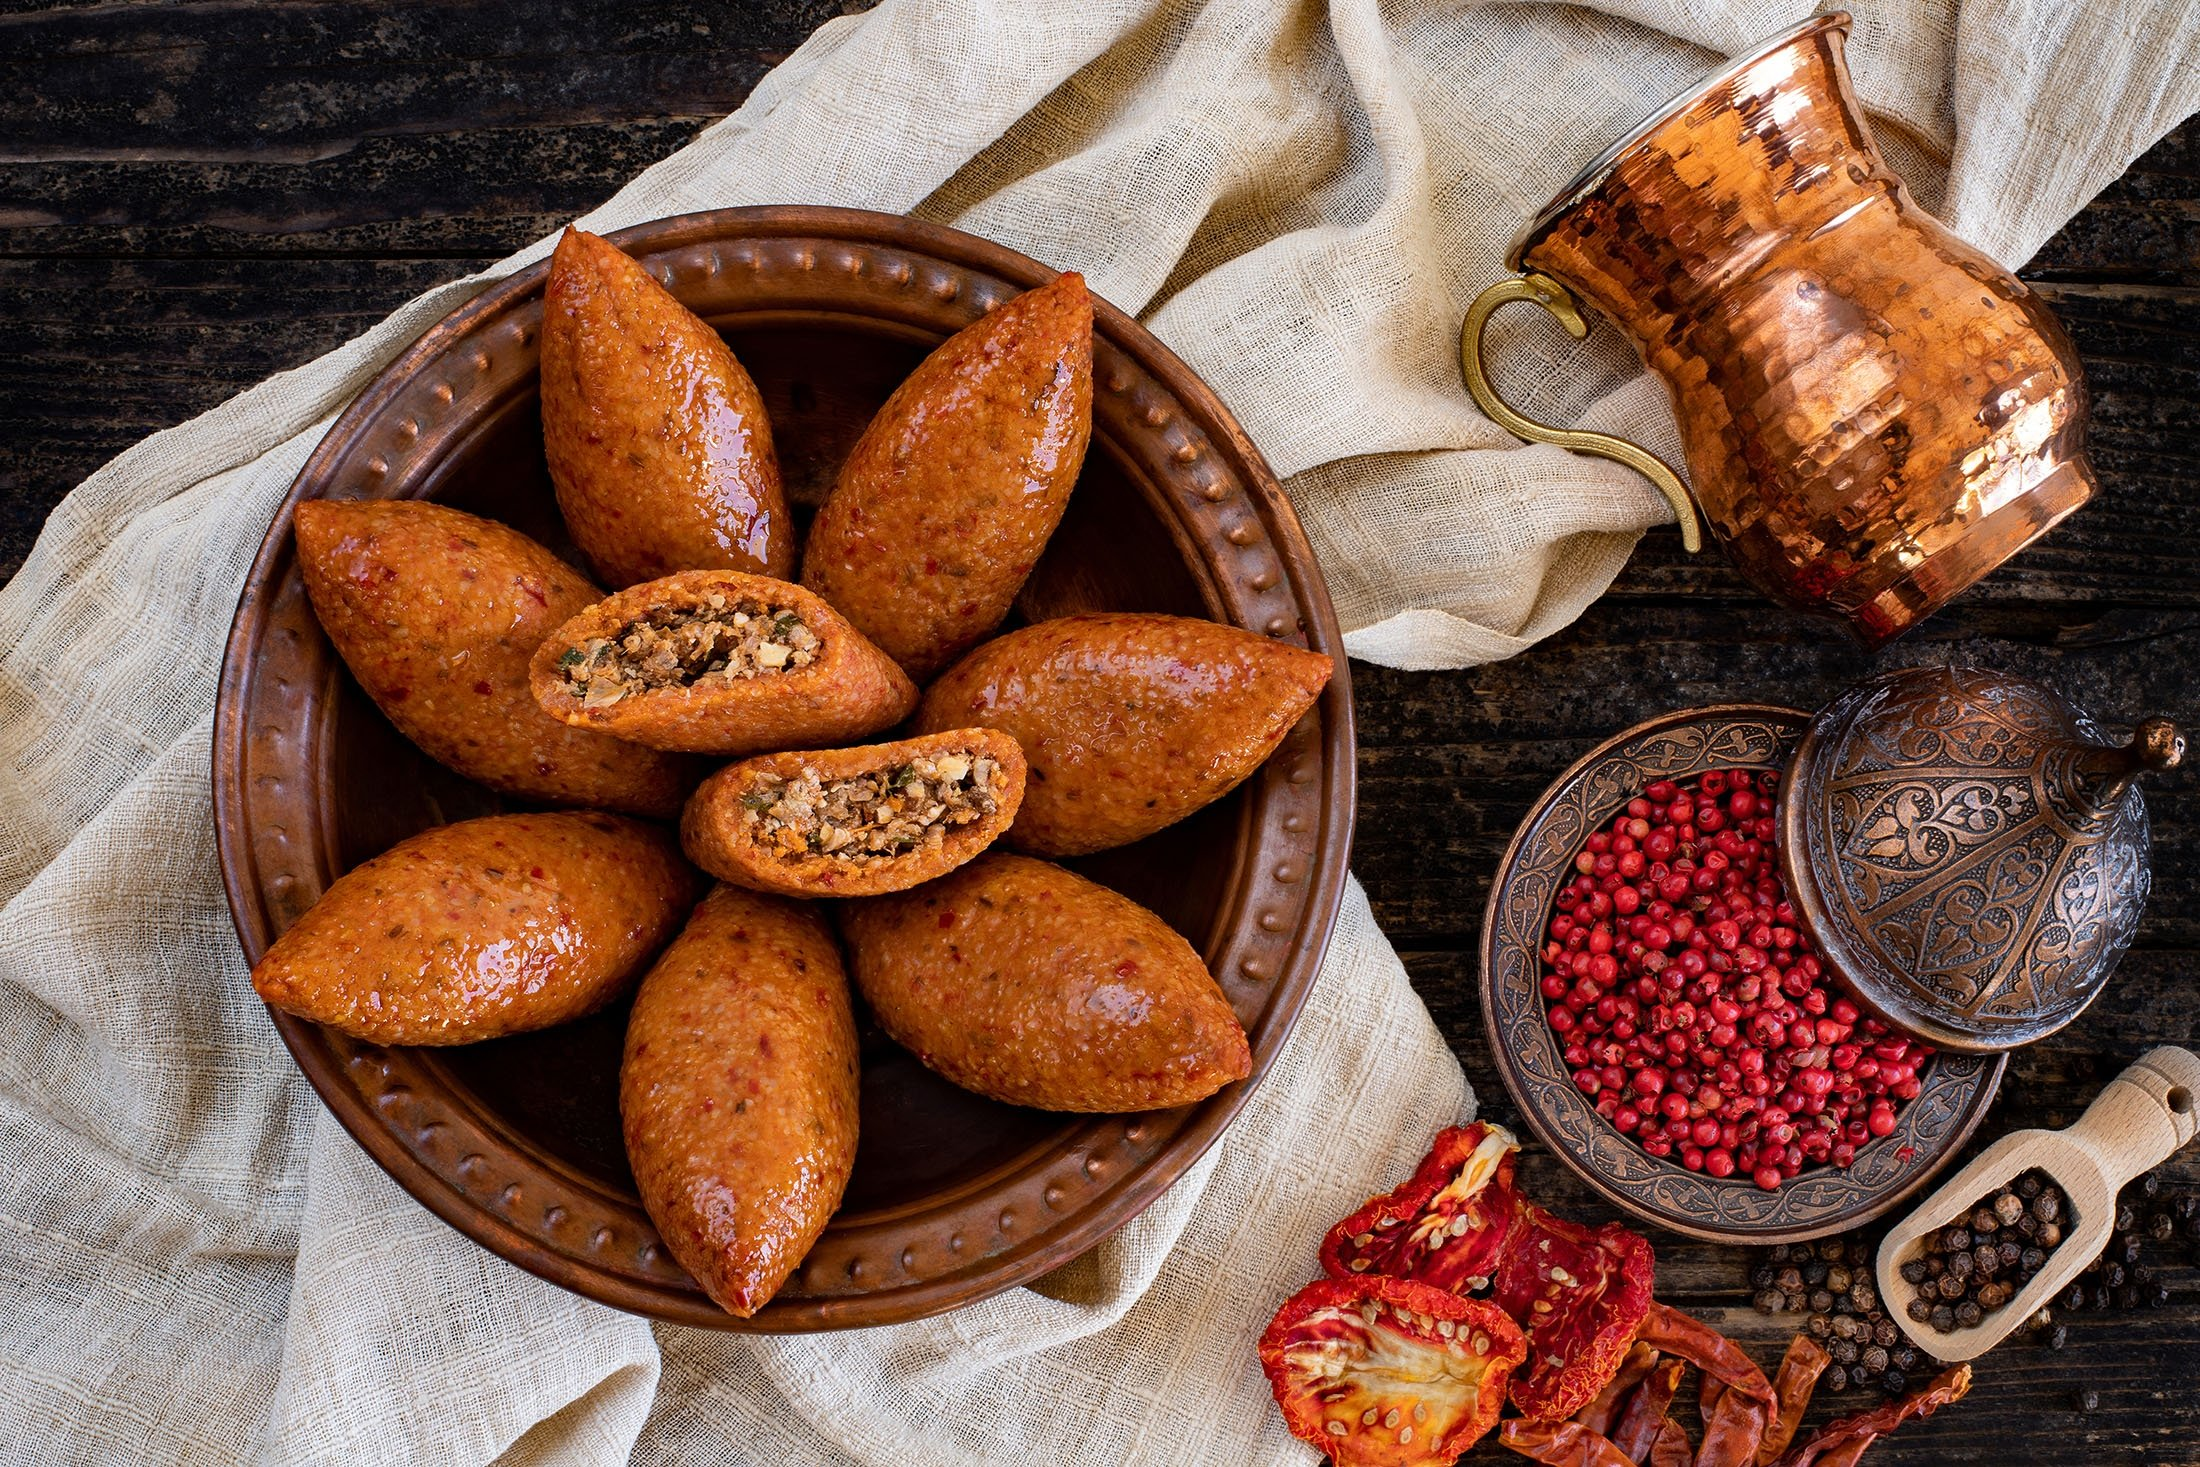 Içli köfte may be tedious to prepare but is a unique treat. (Shutterstock Photo)